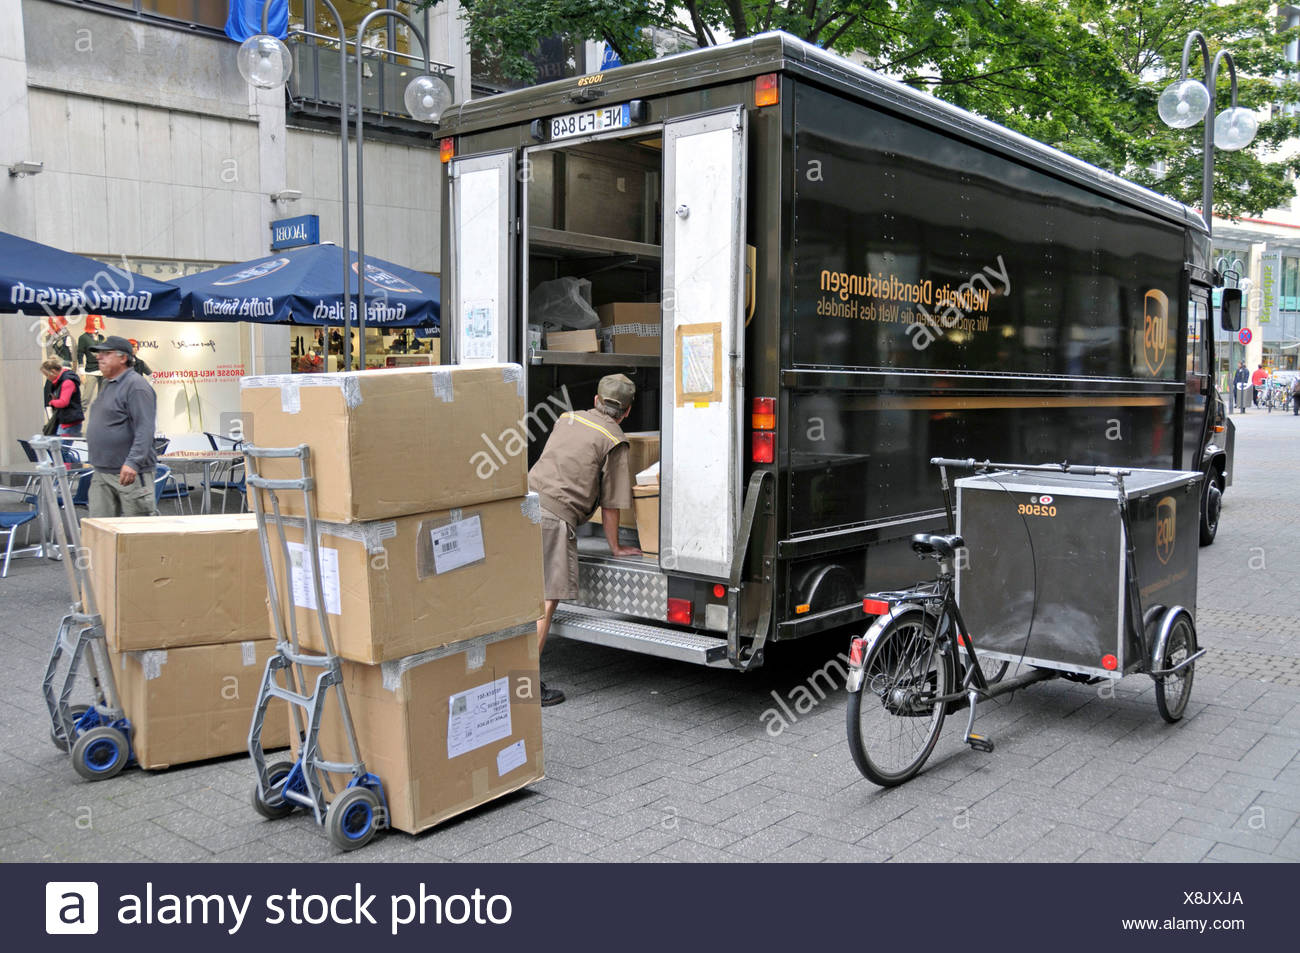 UPS parcel delivery service truck in a Cologne pedestrian zone, North Rhine-Westphalia, Germany, Europe Stock Photo